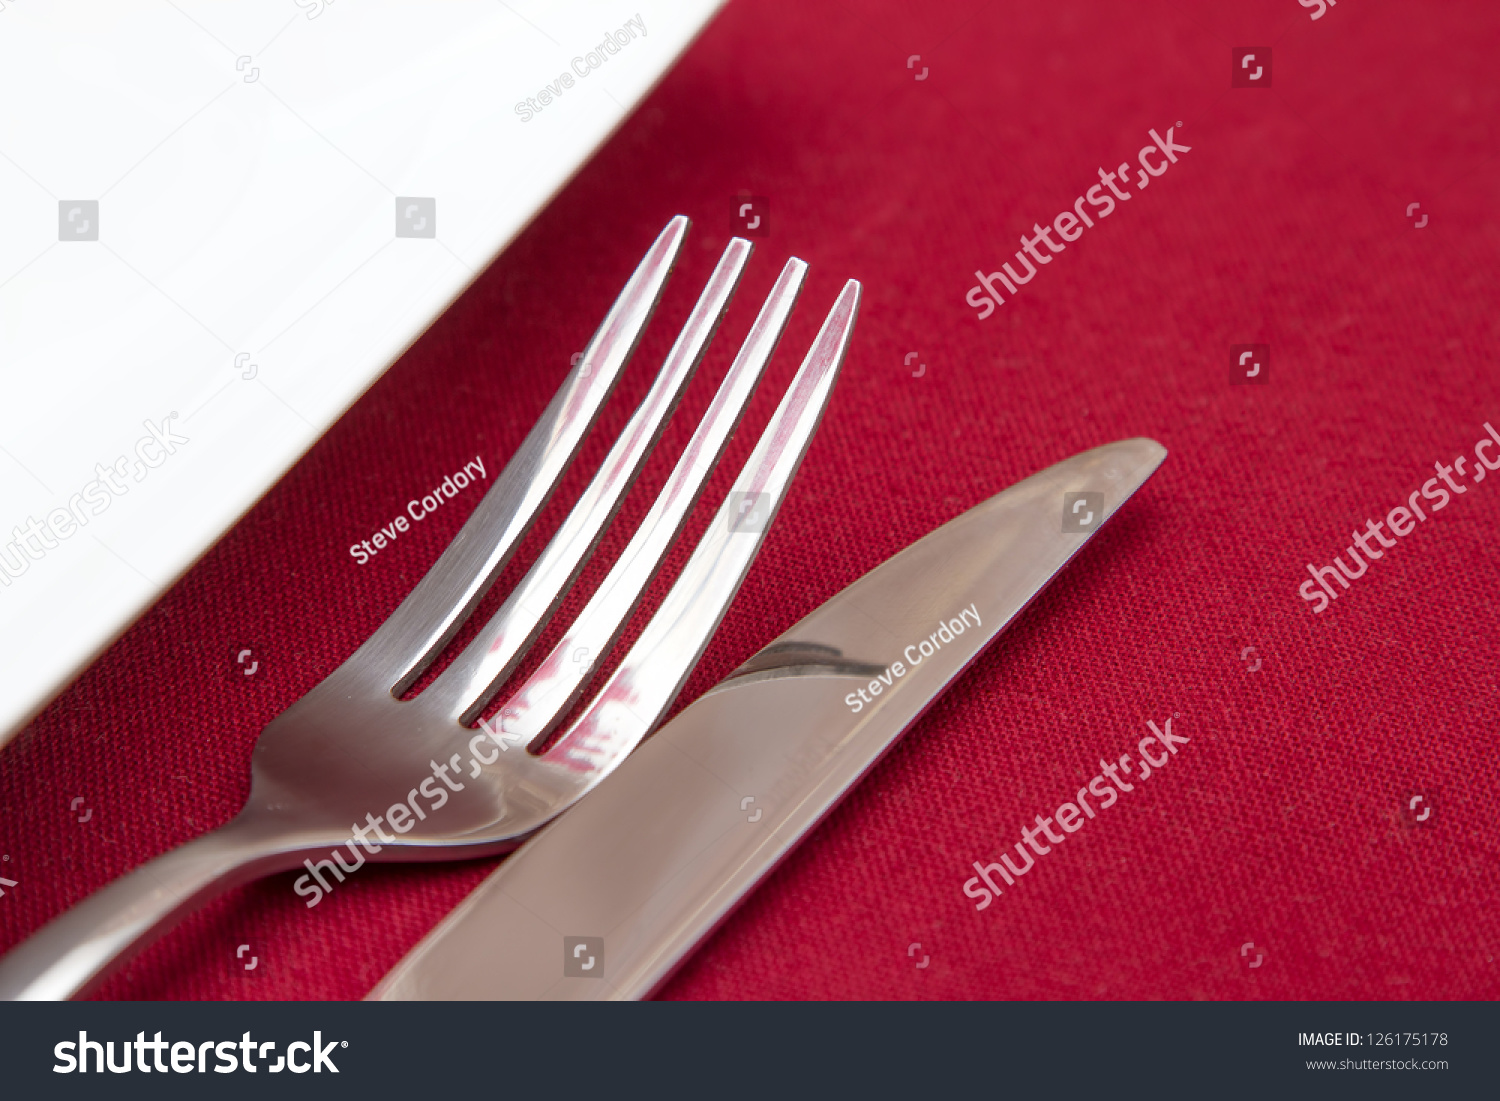 Knife And Fork With White Plate On Red Tablecloth Stock